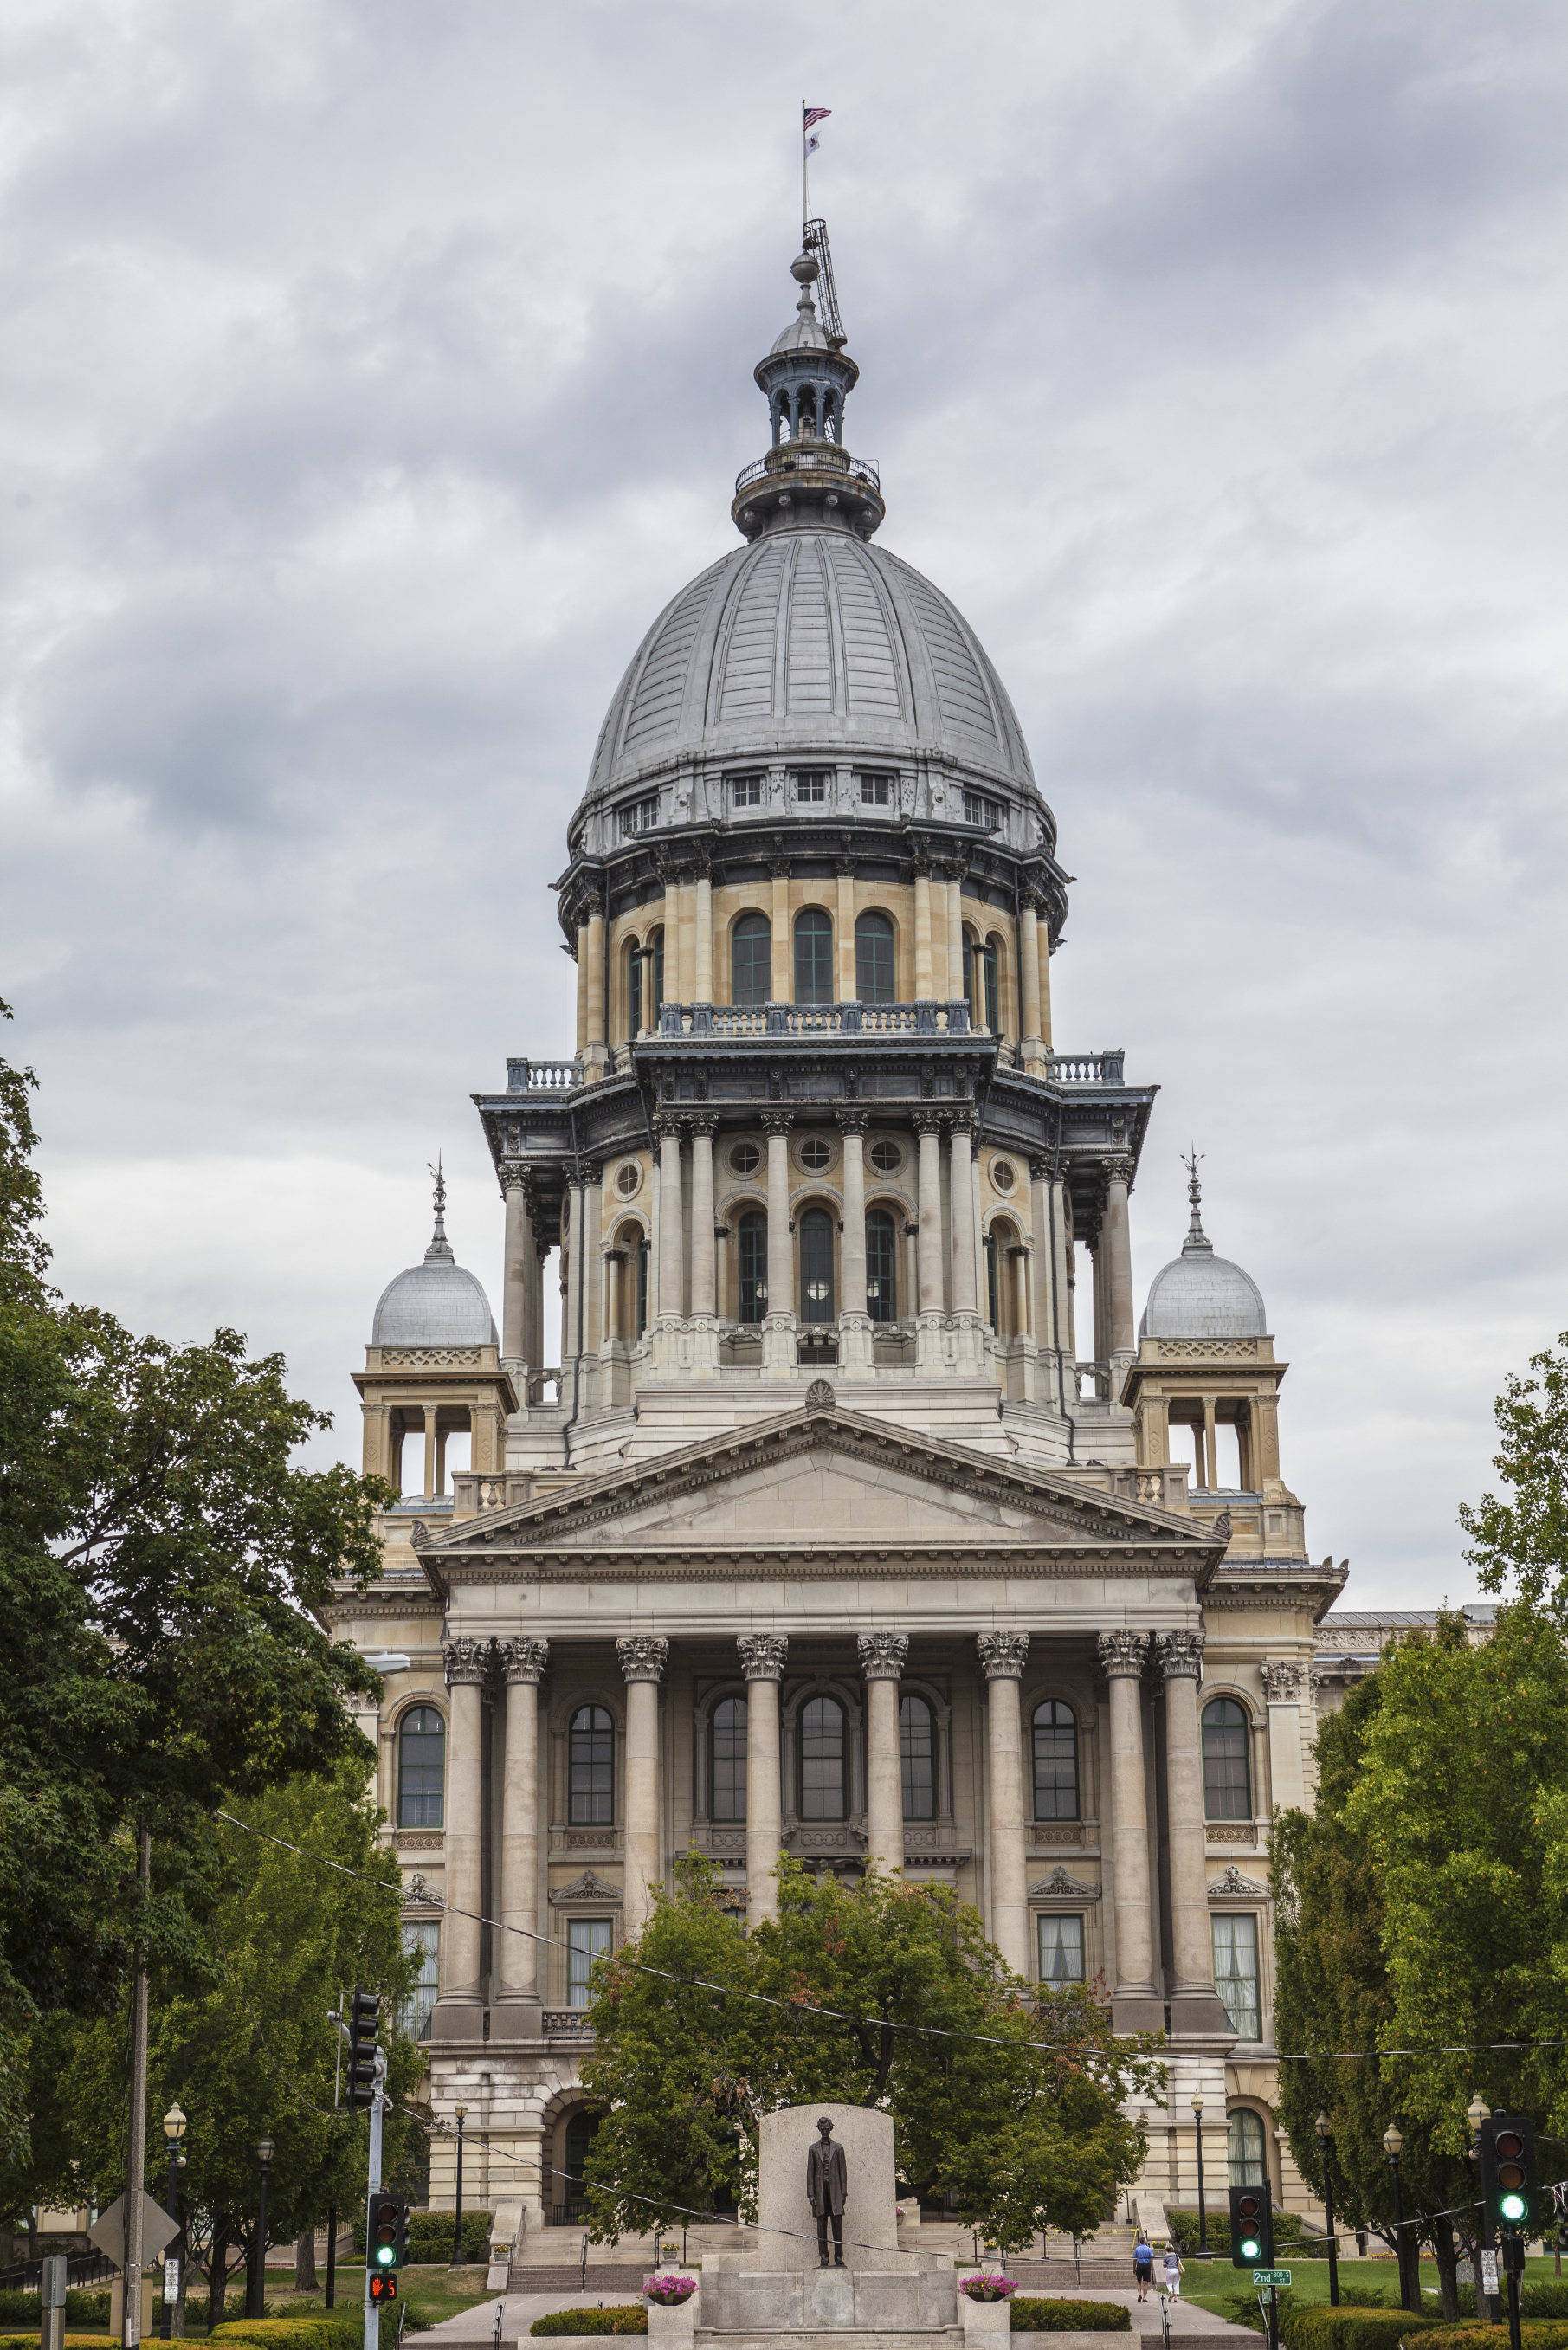 http://www.istockphoto.com/photo/illinois-state-house-and-capitol-building-21414378?st=a5bec29